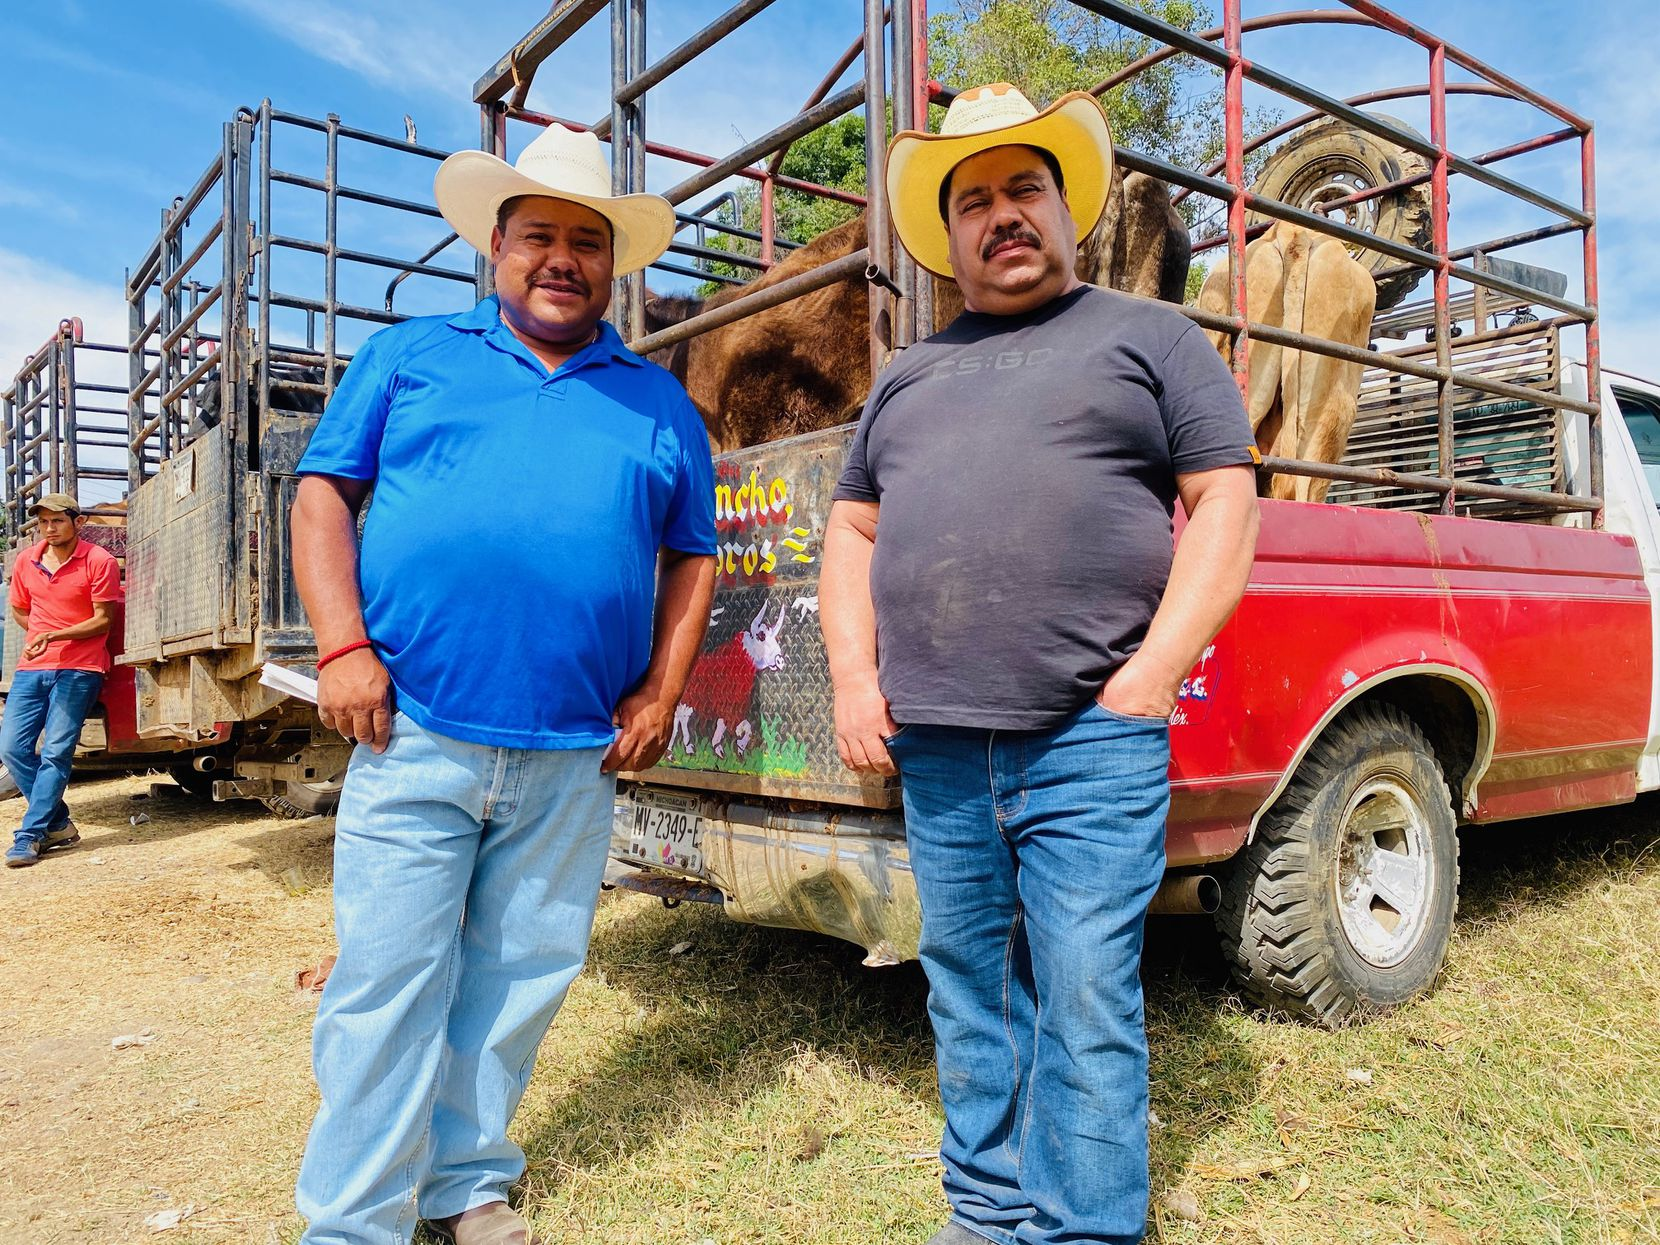 Joaquin Garcia Lopez, left, and his brother Eliel reunite at an outdoor livestock market in Zitacuaro, Michoacan, Mexico, on March 6, 2020. Joaquin had just flown in from Seattle and told his brother coronavirus should be taken seriously.